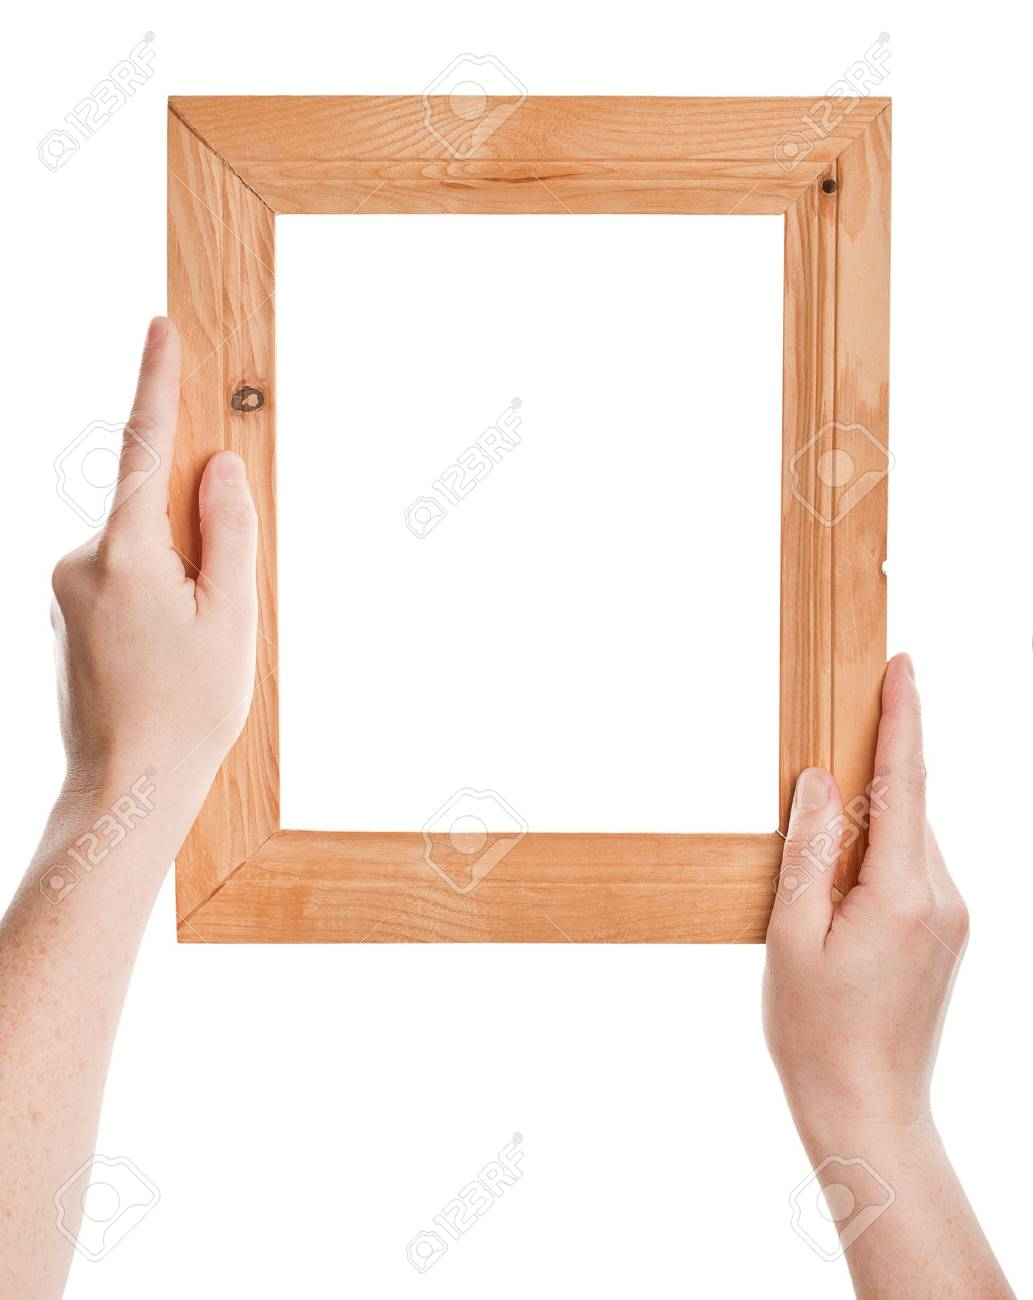 Wooden frame in hands isolated on white background Stock Photo - 13908809